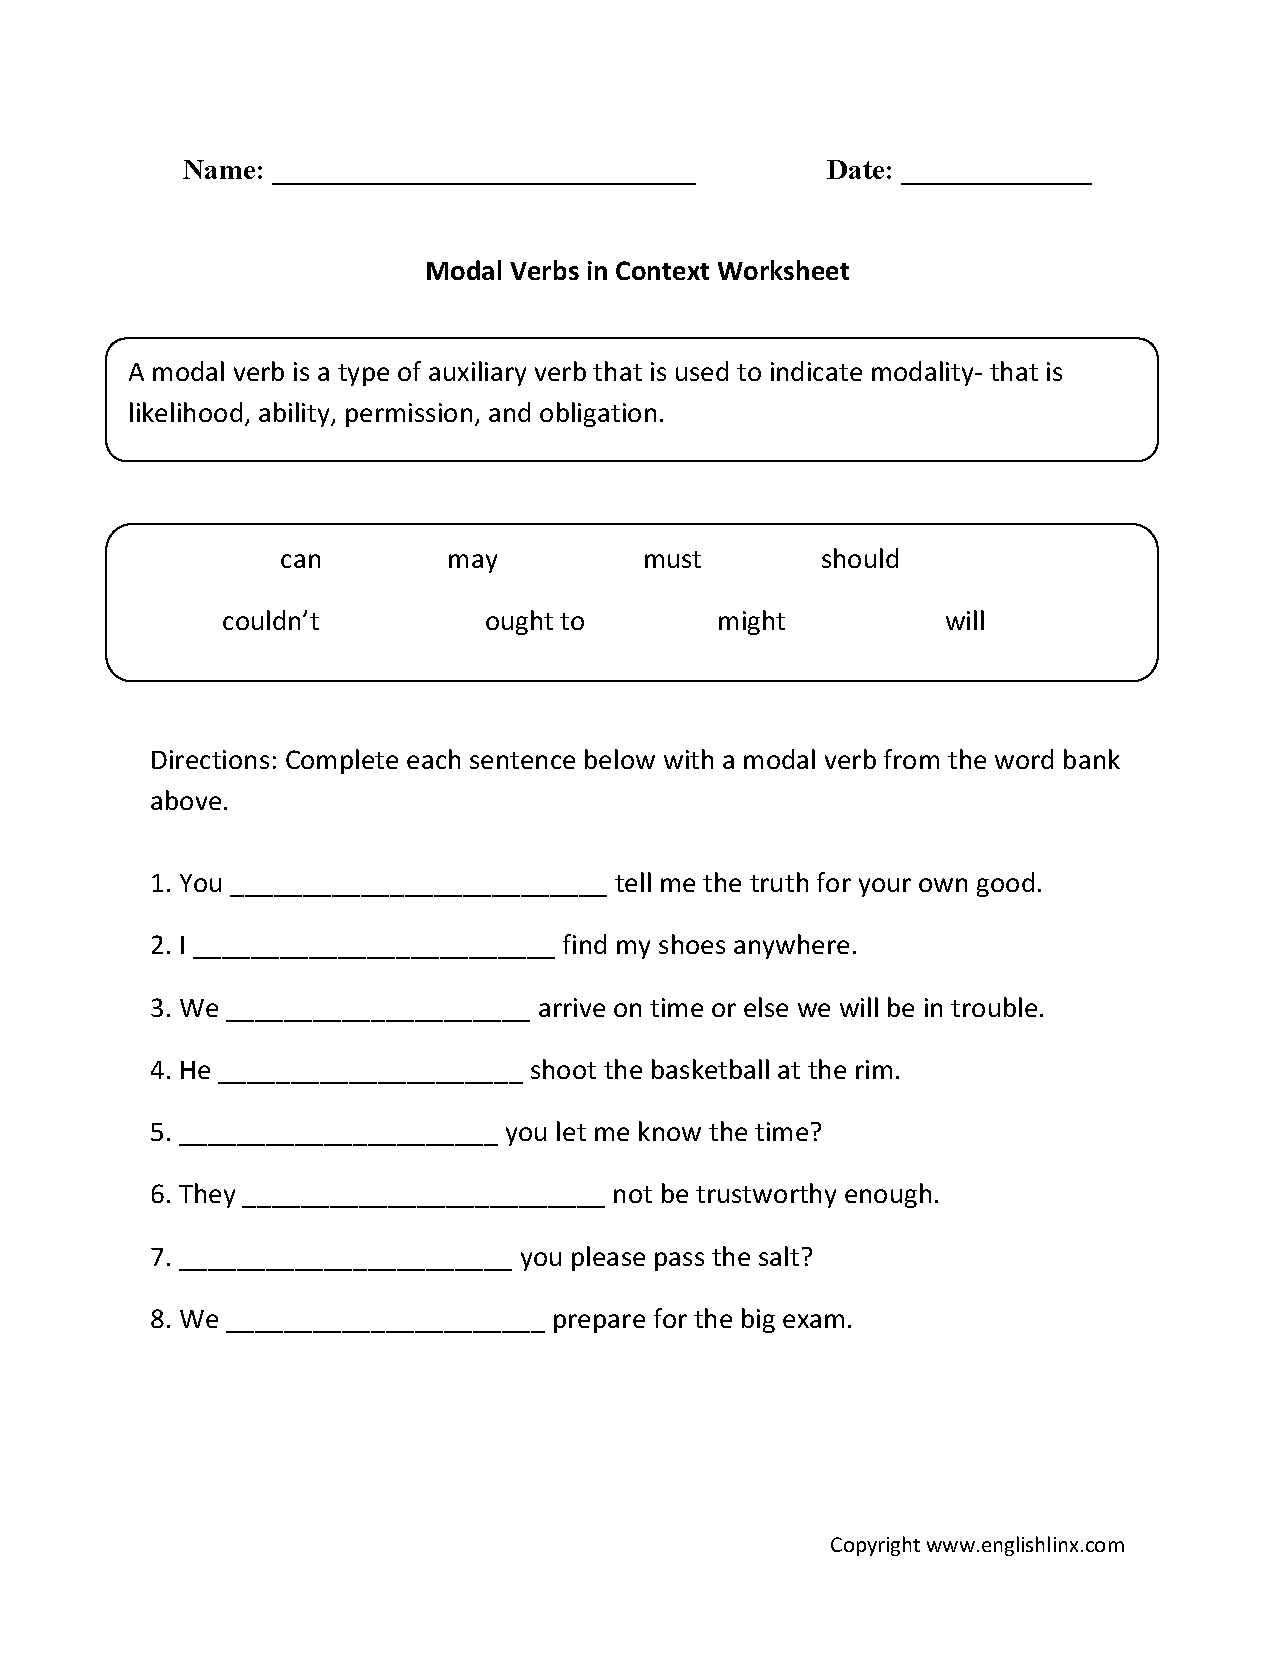 Worksheets Linking Verbs Worksheet englishlinx com verbs worksheets modal worksheets